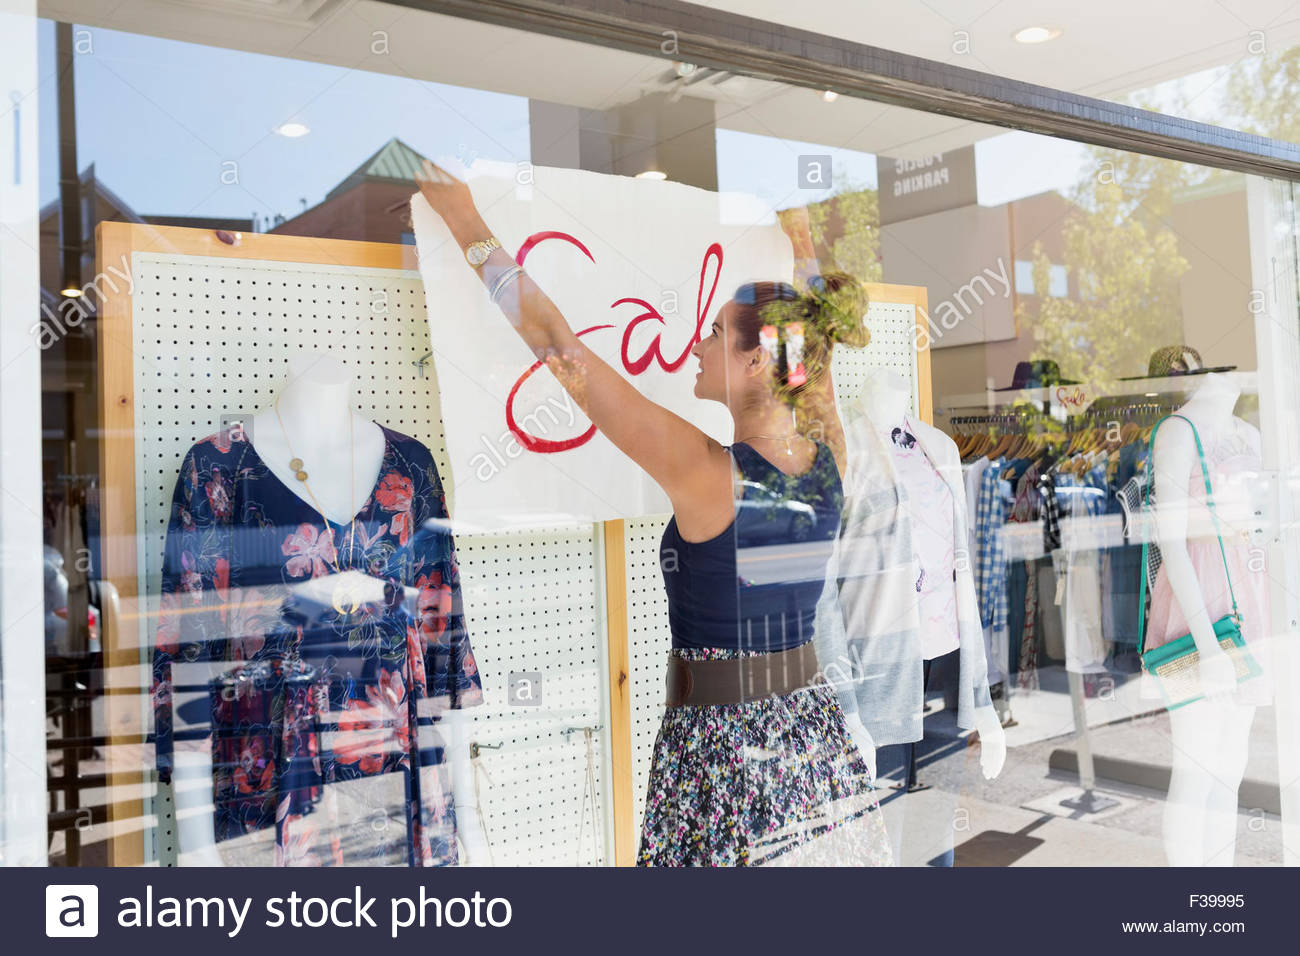 storefront display stockfotos storefront display bilder alamy. Black Bedroom Furniture Sets. Home Design Ideas